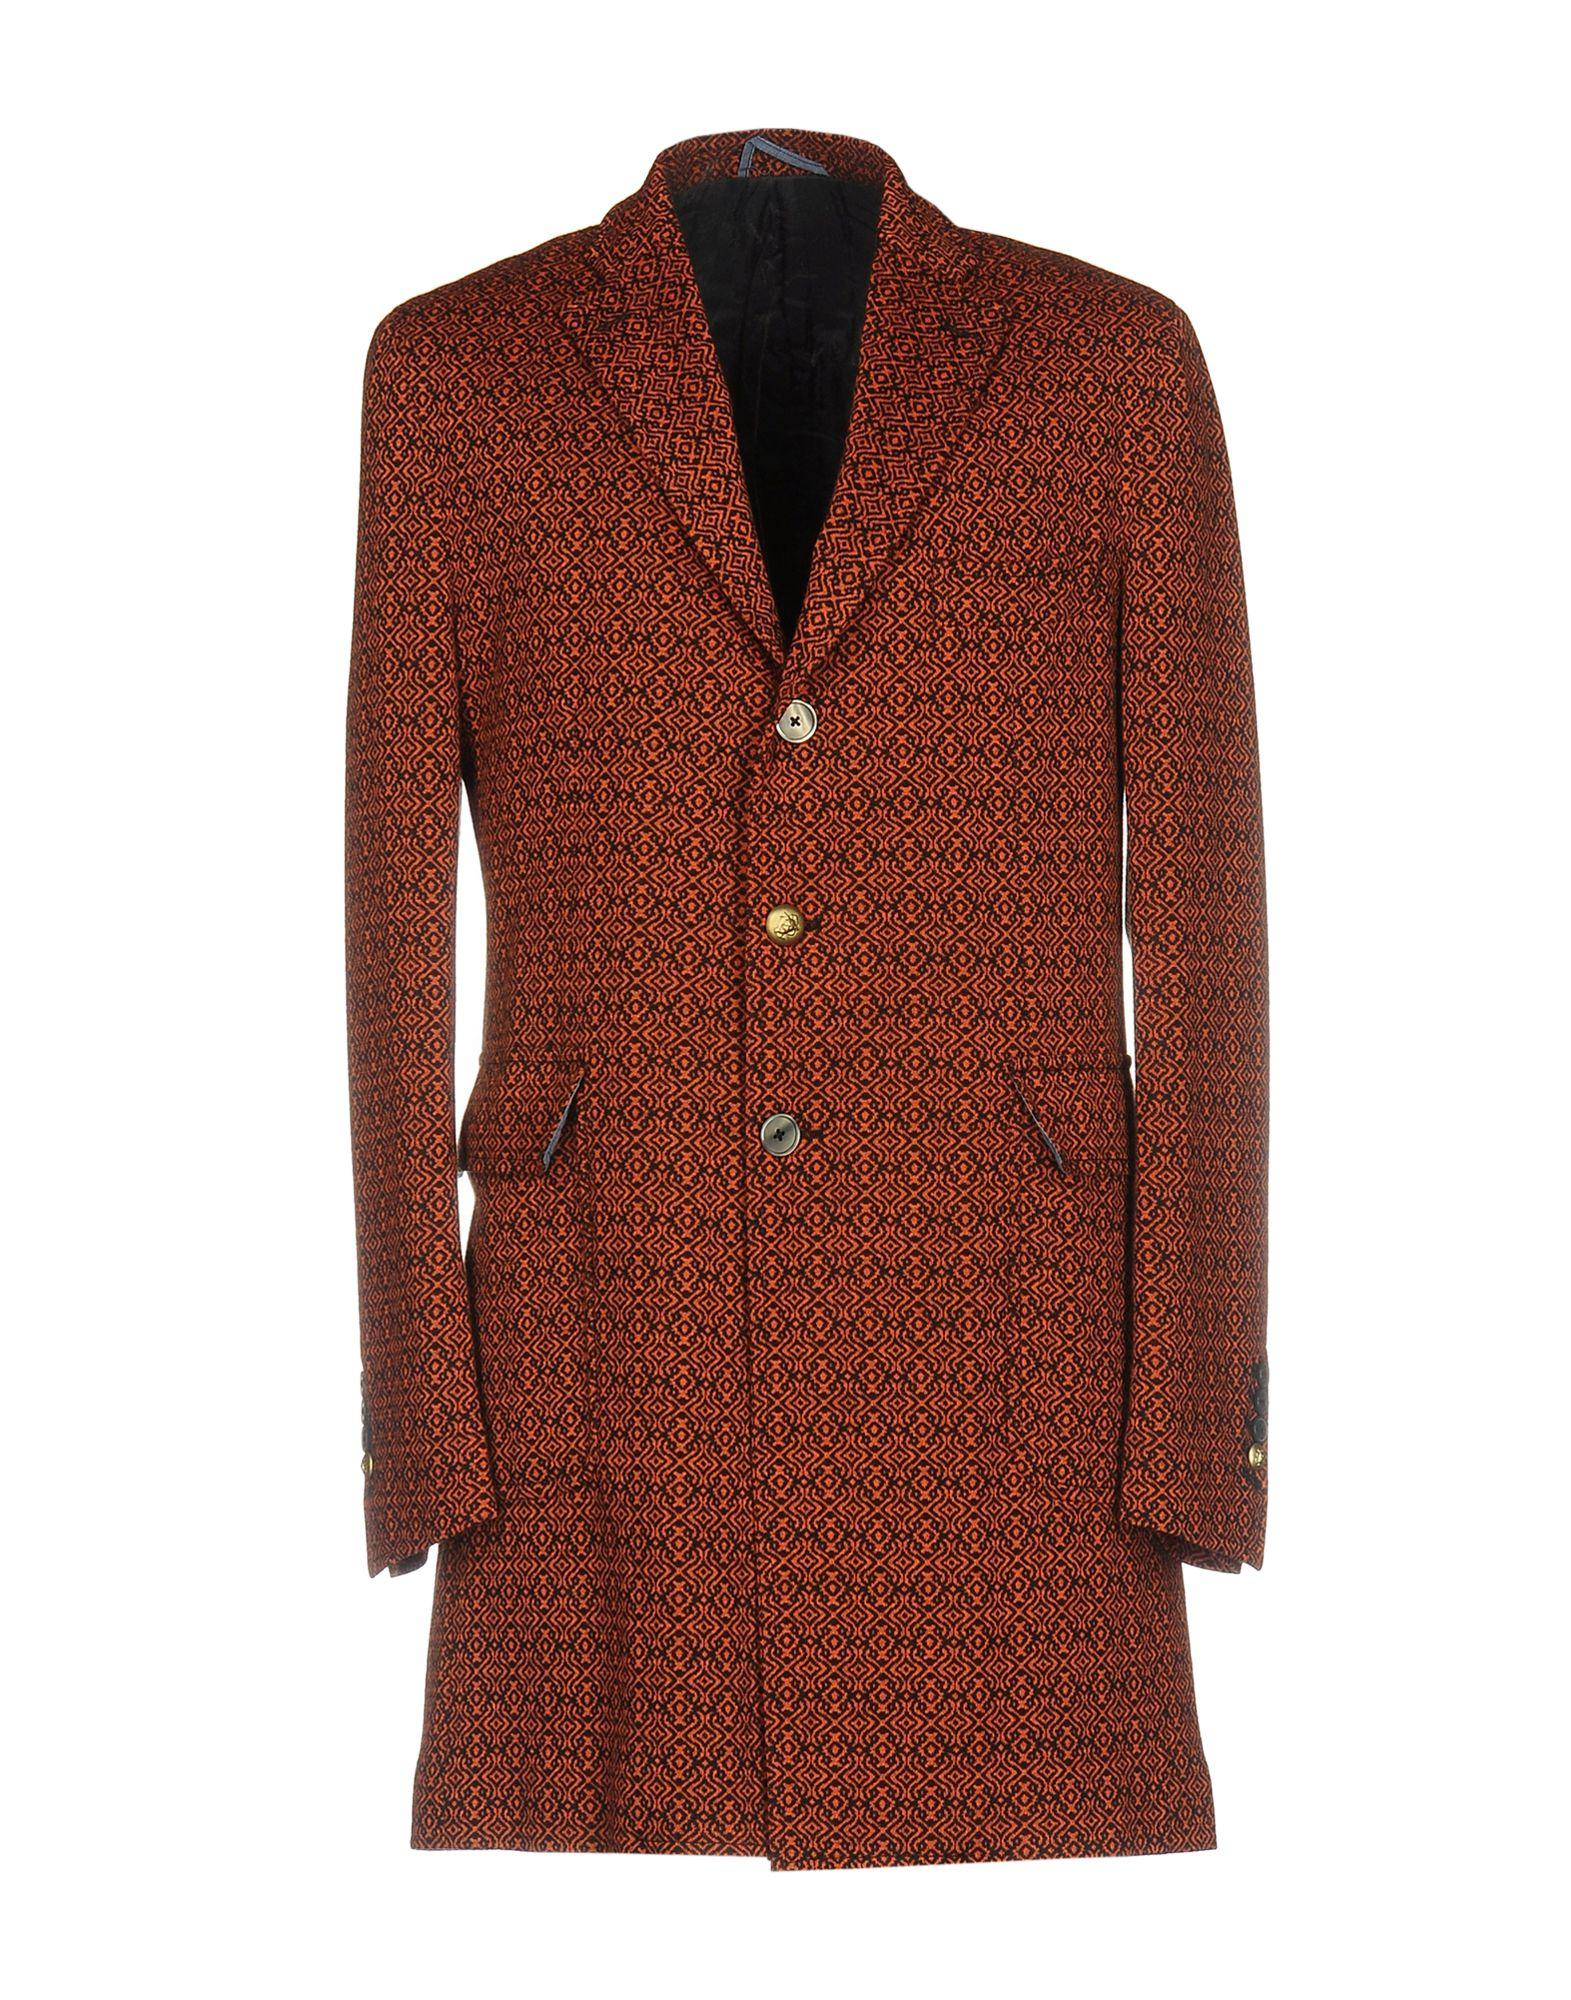 John Sheep Coat In Orange